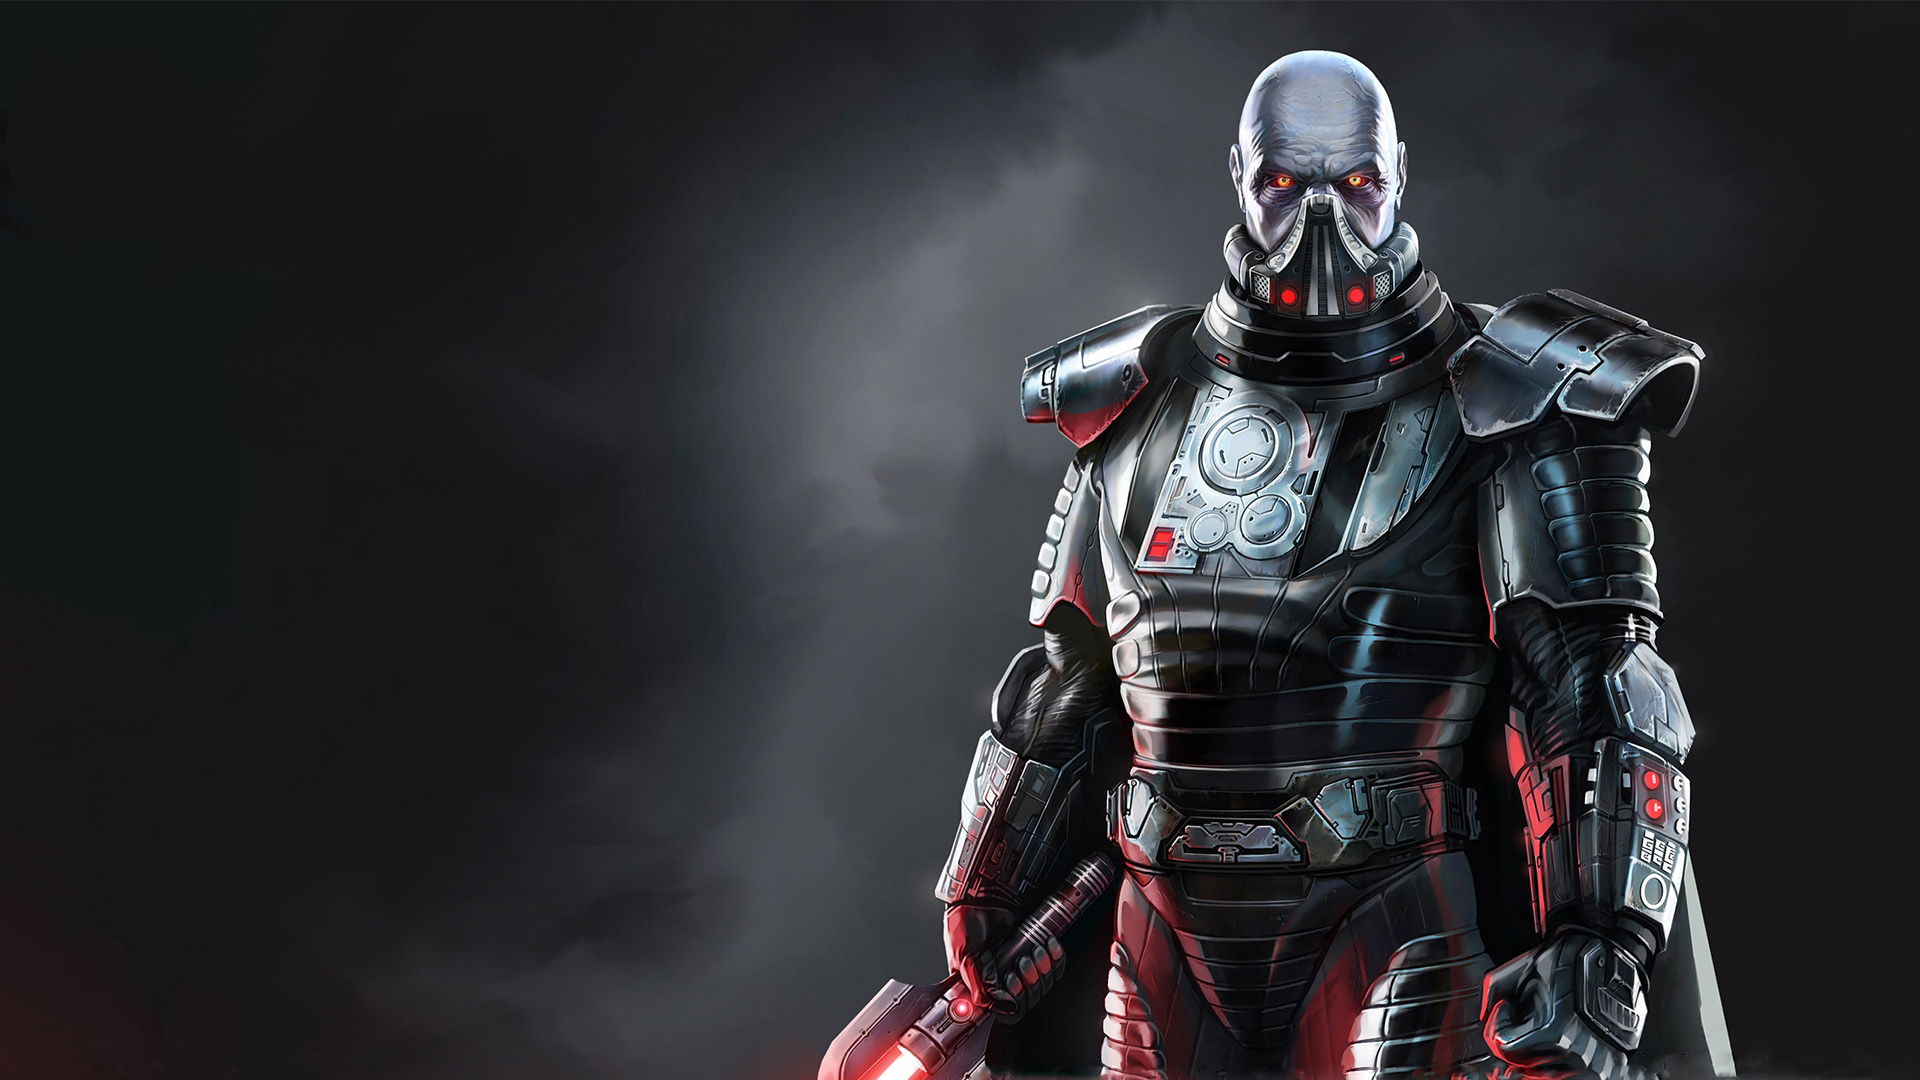 30 Inspiring Star Wars The Old Republic Wallpaper 1920x1080